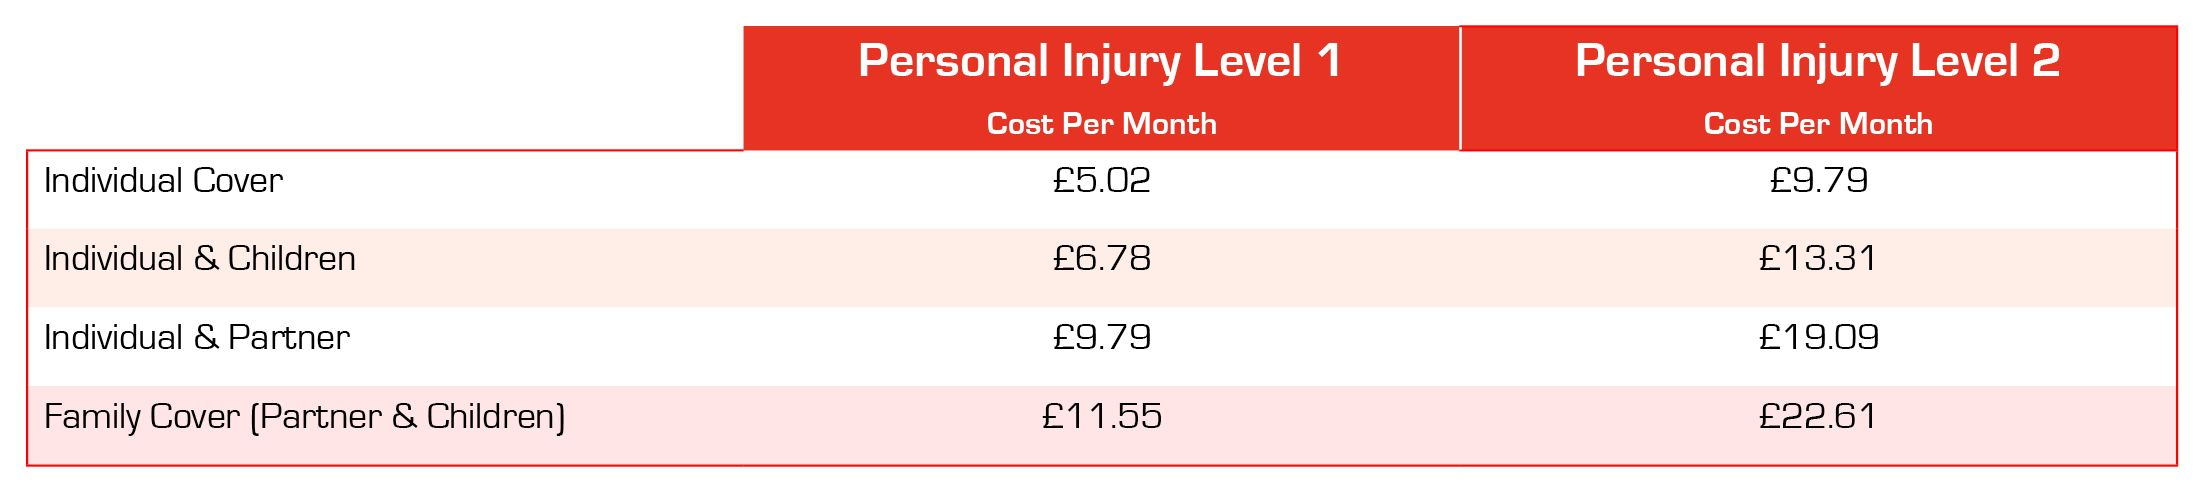 Sports Personal Injury Plans